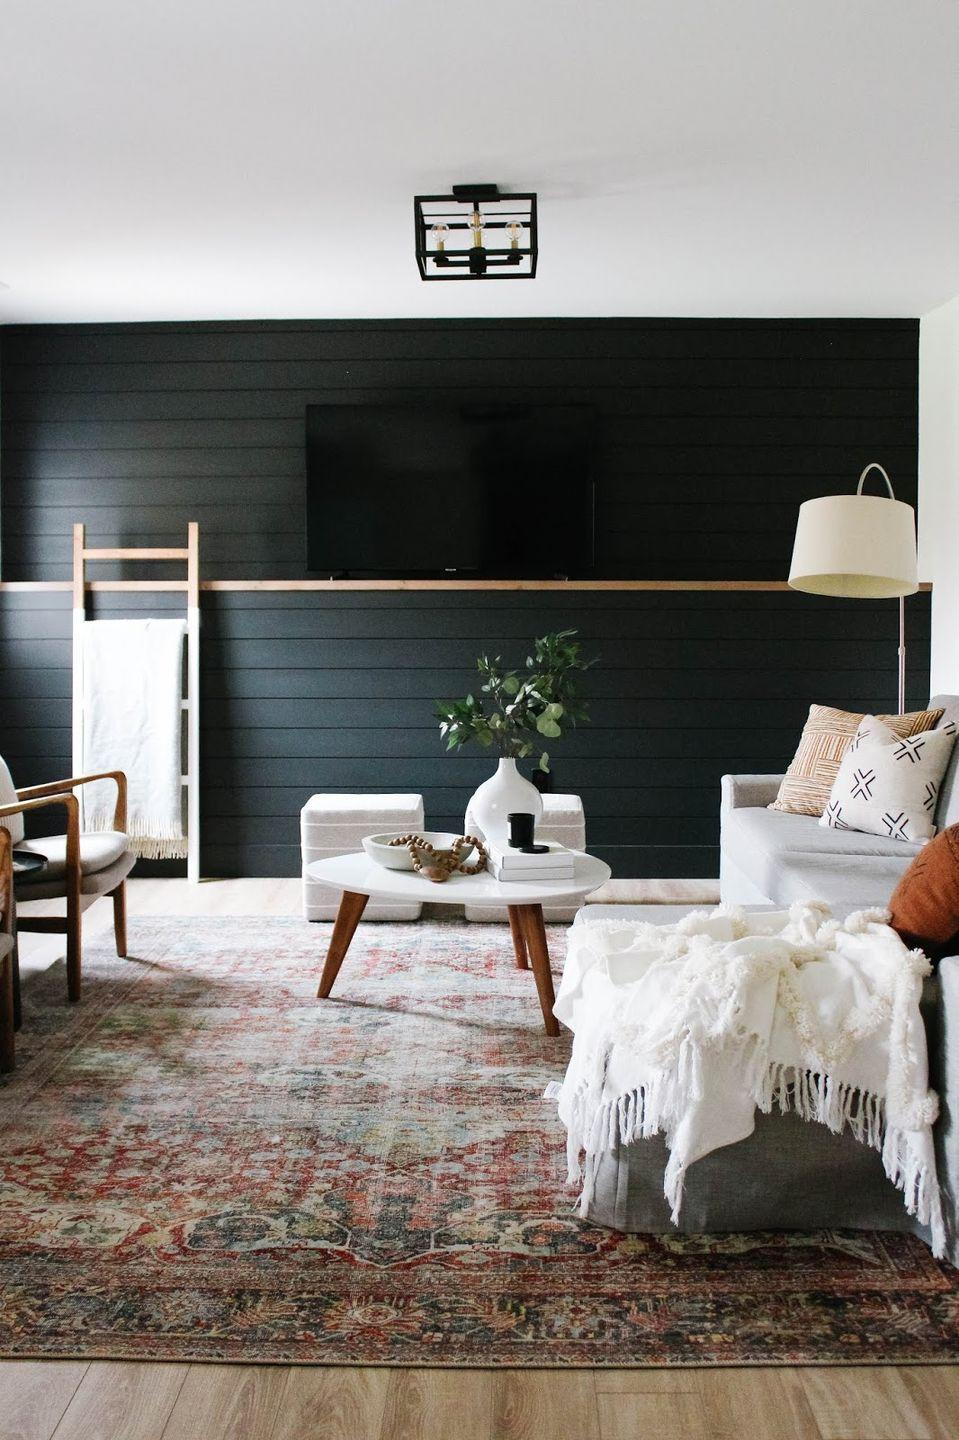 "<p>Step outside your comfort zone by featuring bold black shiplap walls in your basement. This look pairs well with neutrals and is the most genius way to hide your TV in plain sight!</p><p><strong>See more at <a href=""https://www.houseofhiredesigns.com/2019/10/basement-reveal.html"" rel=""nofollow noopener"" target=""_blank"" data-ylk=""slk:House of Hire"" class=""link rapid-noclick-resp"">House of Hire</a>.</strong></p><p><a class=""link rapid-noclick-resp"" href=""https://go.redirectingat.com?id=74968X1596630&url=https%3A%2F%2Fwww.walmart.com%2Fip%2F15-W-x-48-H-x-3-1-2-D-Vintage-Farmhouse-3-Rung-Ladder-Barnwood-Decor-Collection-Reclaimed-Grey%2F256880278&sref=https%3A%2F%2Fwww.thepioneerwoman.com%2Fhome-lifestyle%2Fdecorating-ideas%2Fg34763691%2Fbasement-ideas%2F"" rel=""nofollow noopener"" target=""_blank"" data-ylk=""slk:SHOP DECORATIVE LADDERS"">SHOP DECORATIVE LADDERS</a></p>"